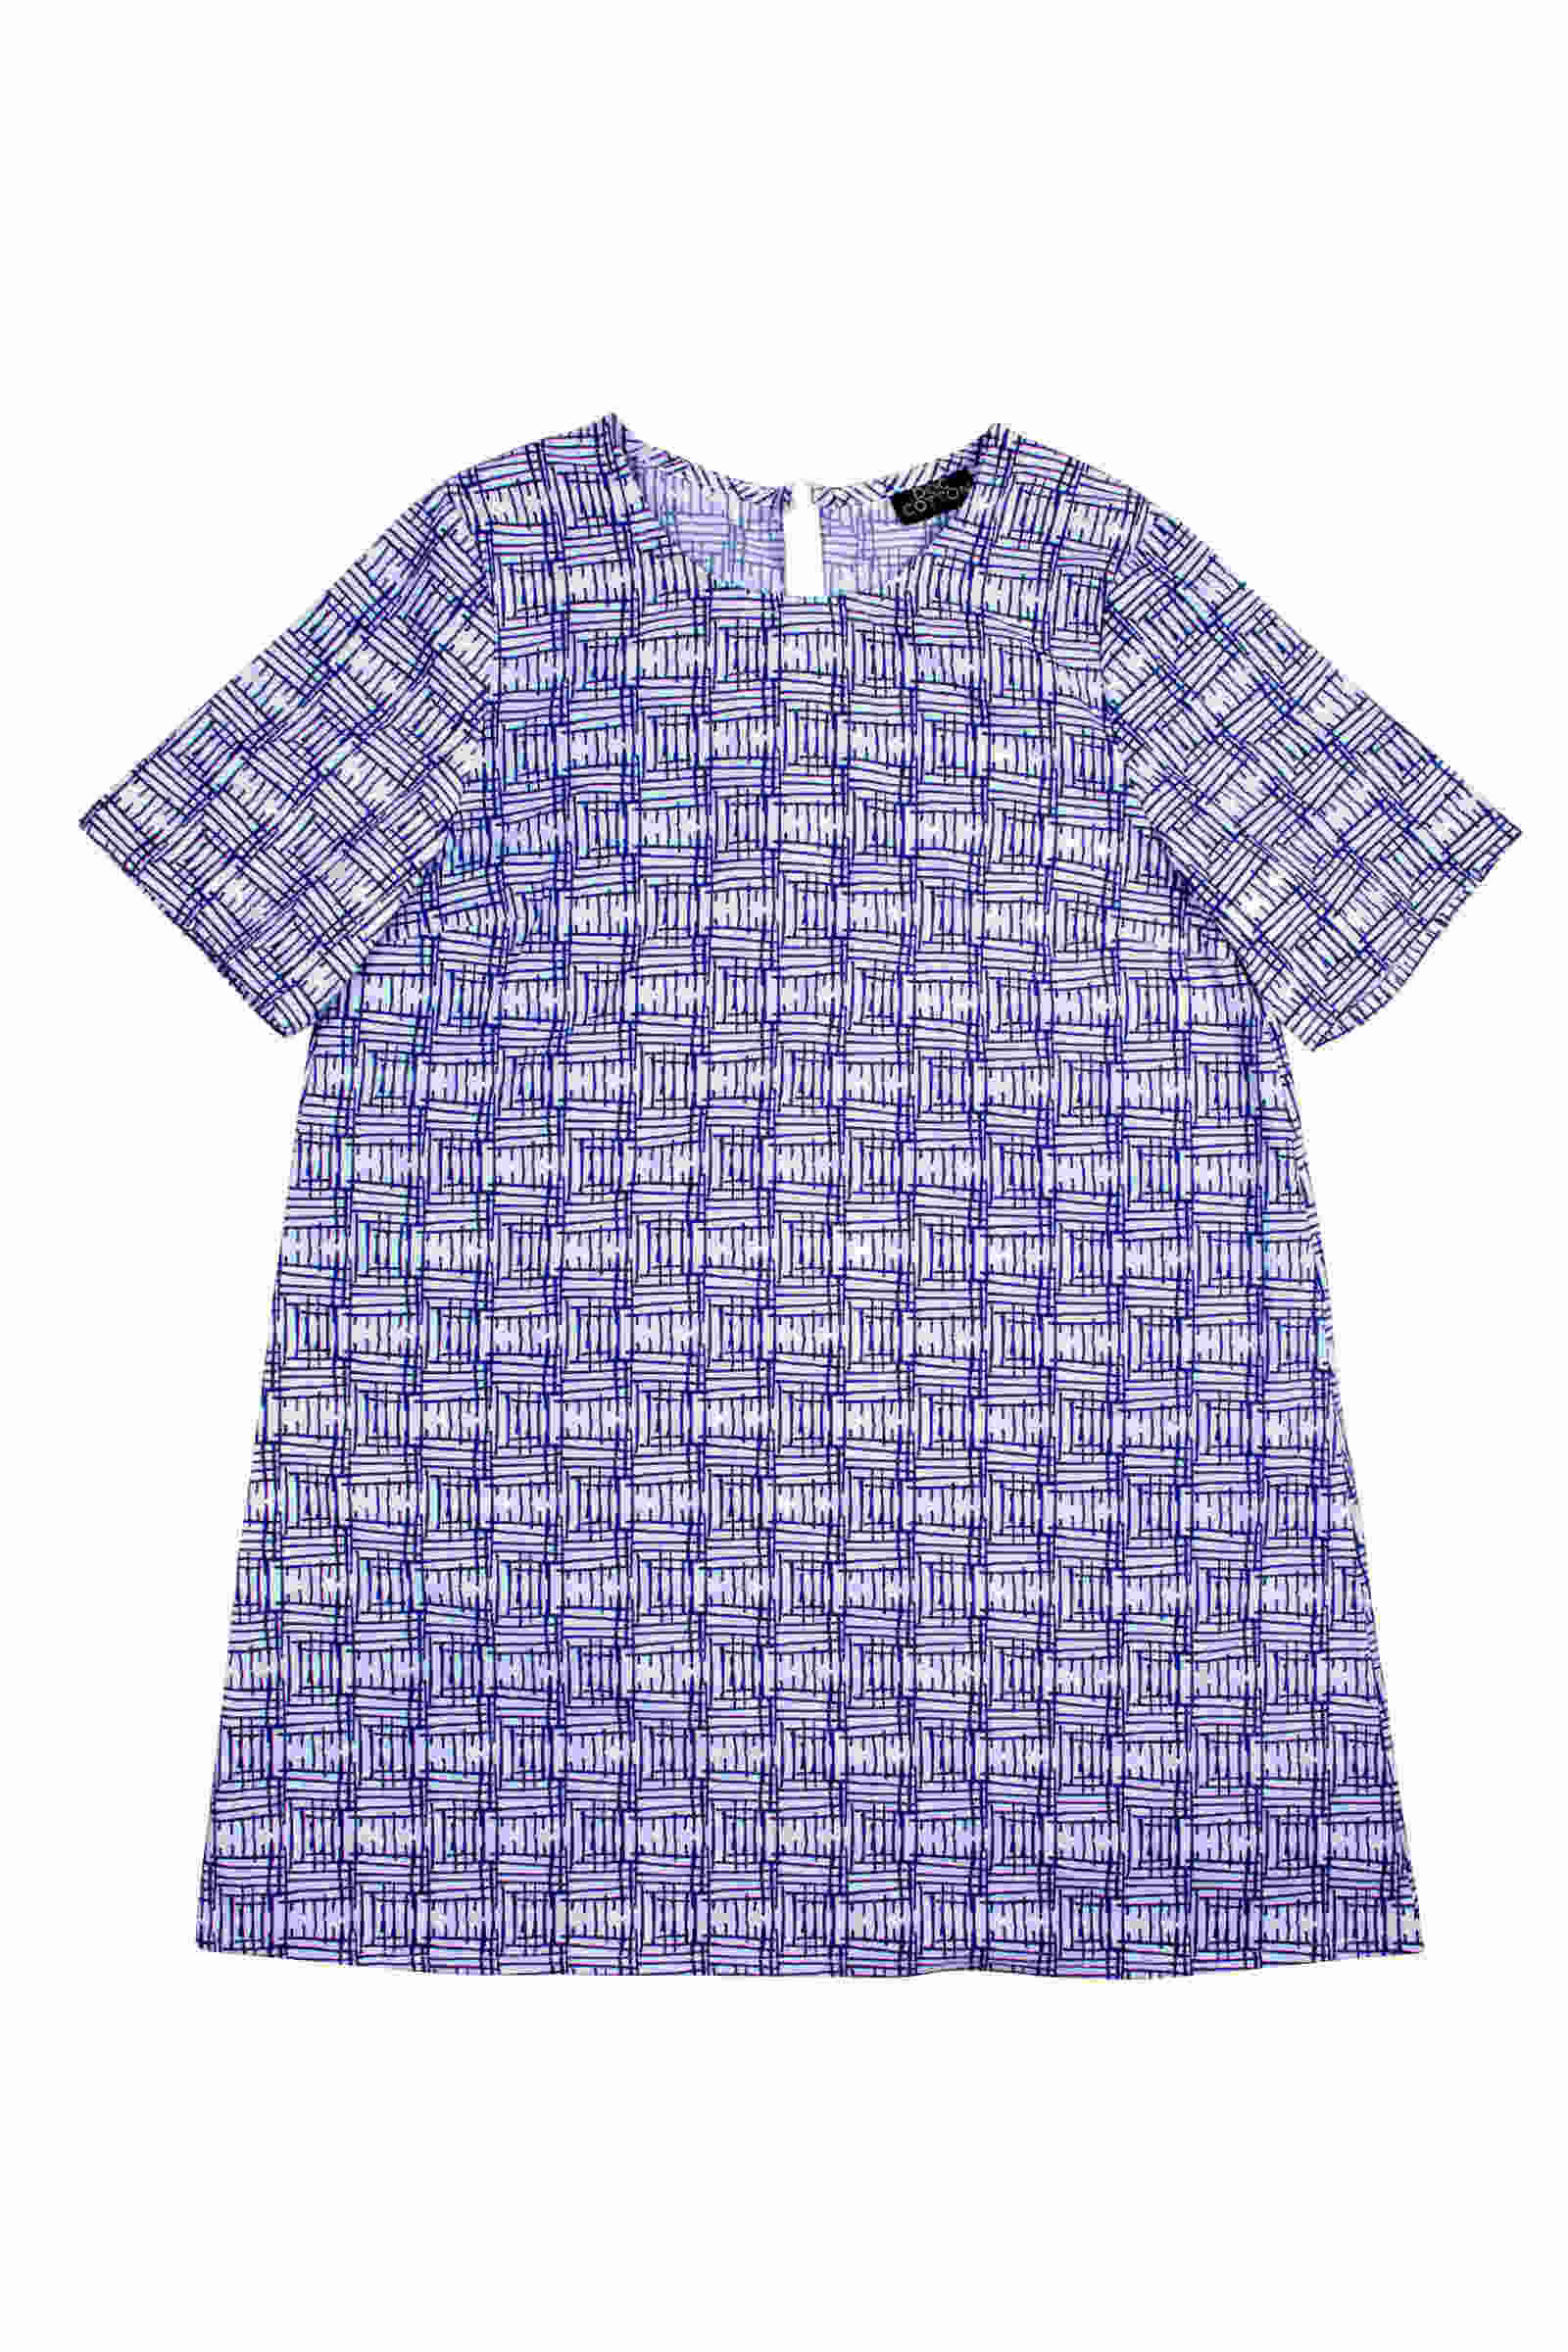 Women's tea dress